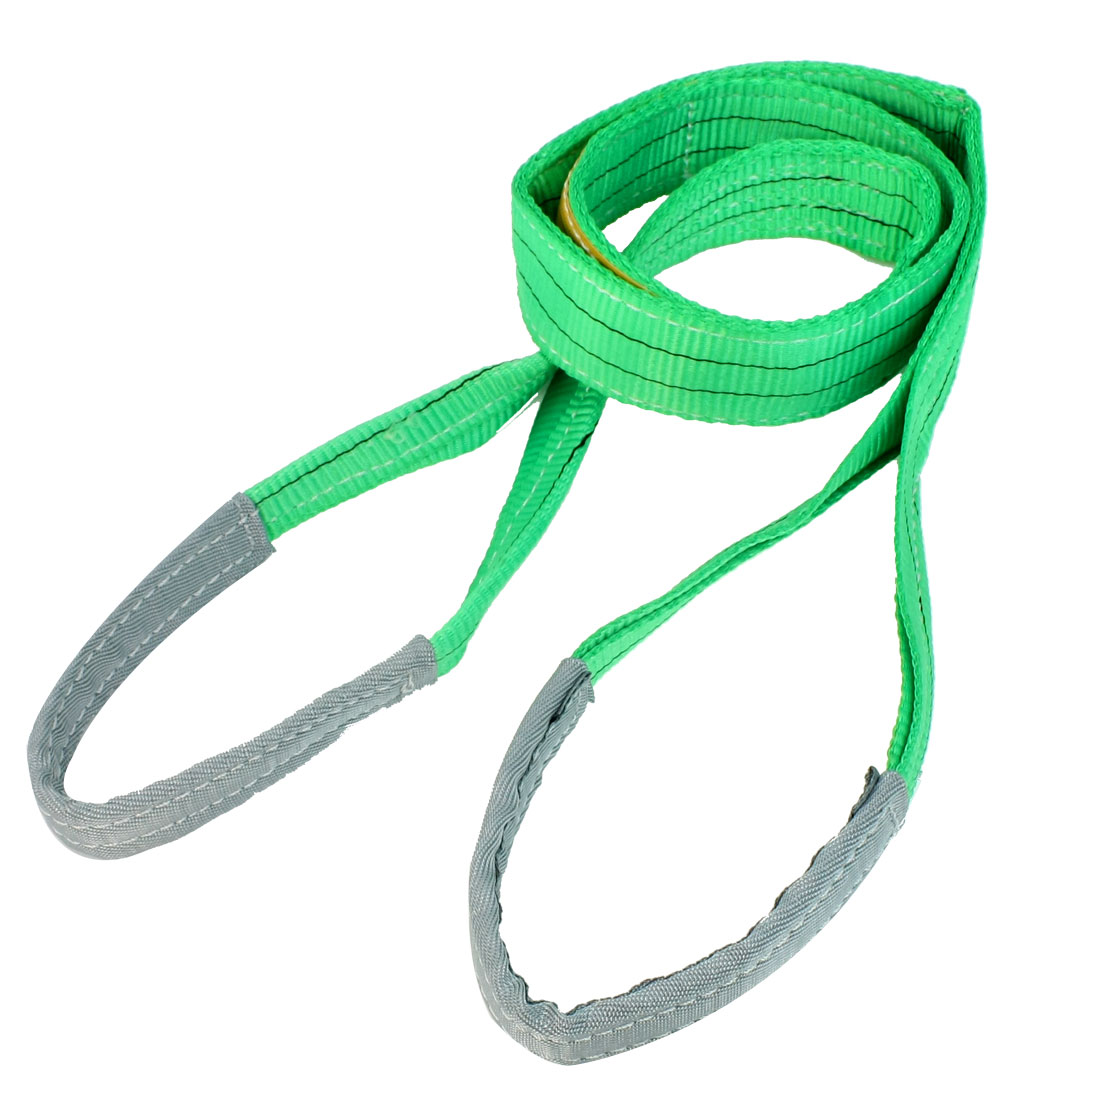 2M Length 50mm Width Eye to Eye Nylon Web Lifting Tow Strap Green